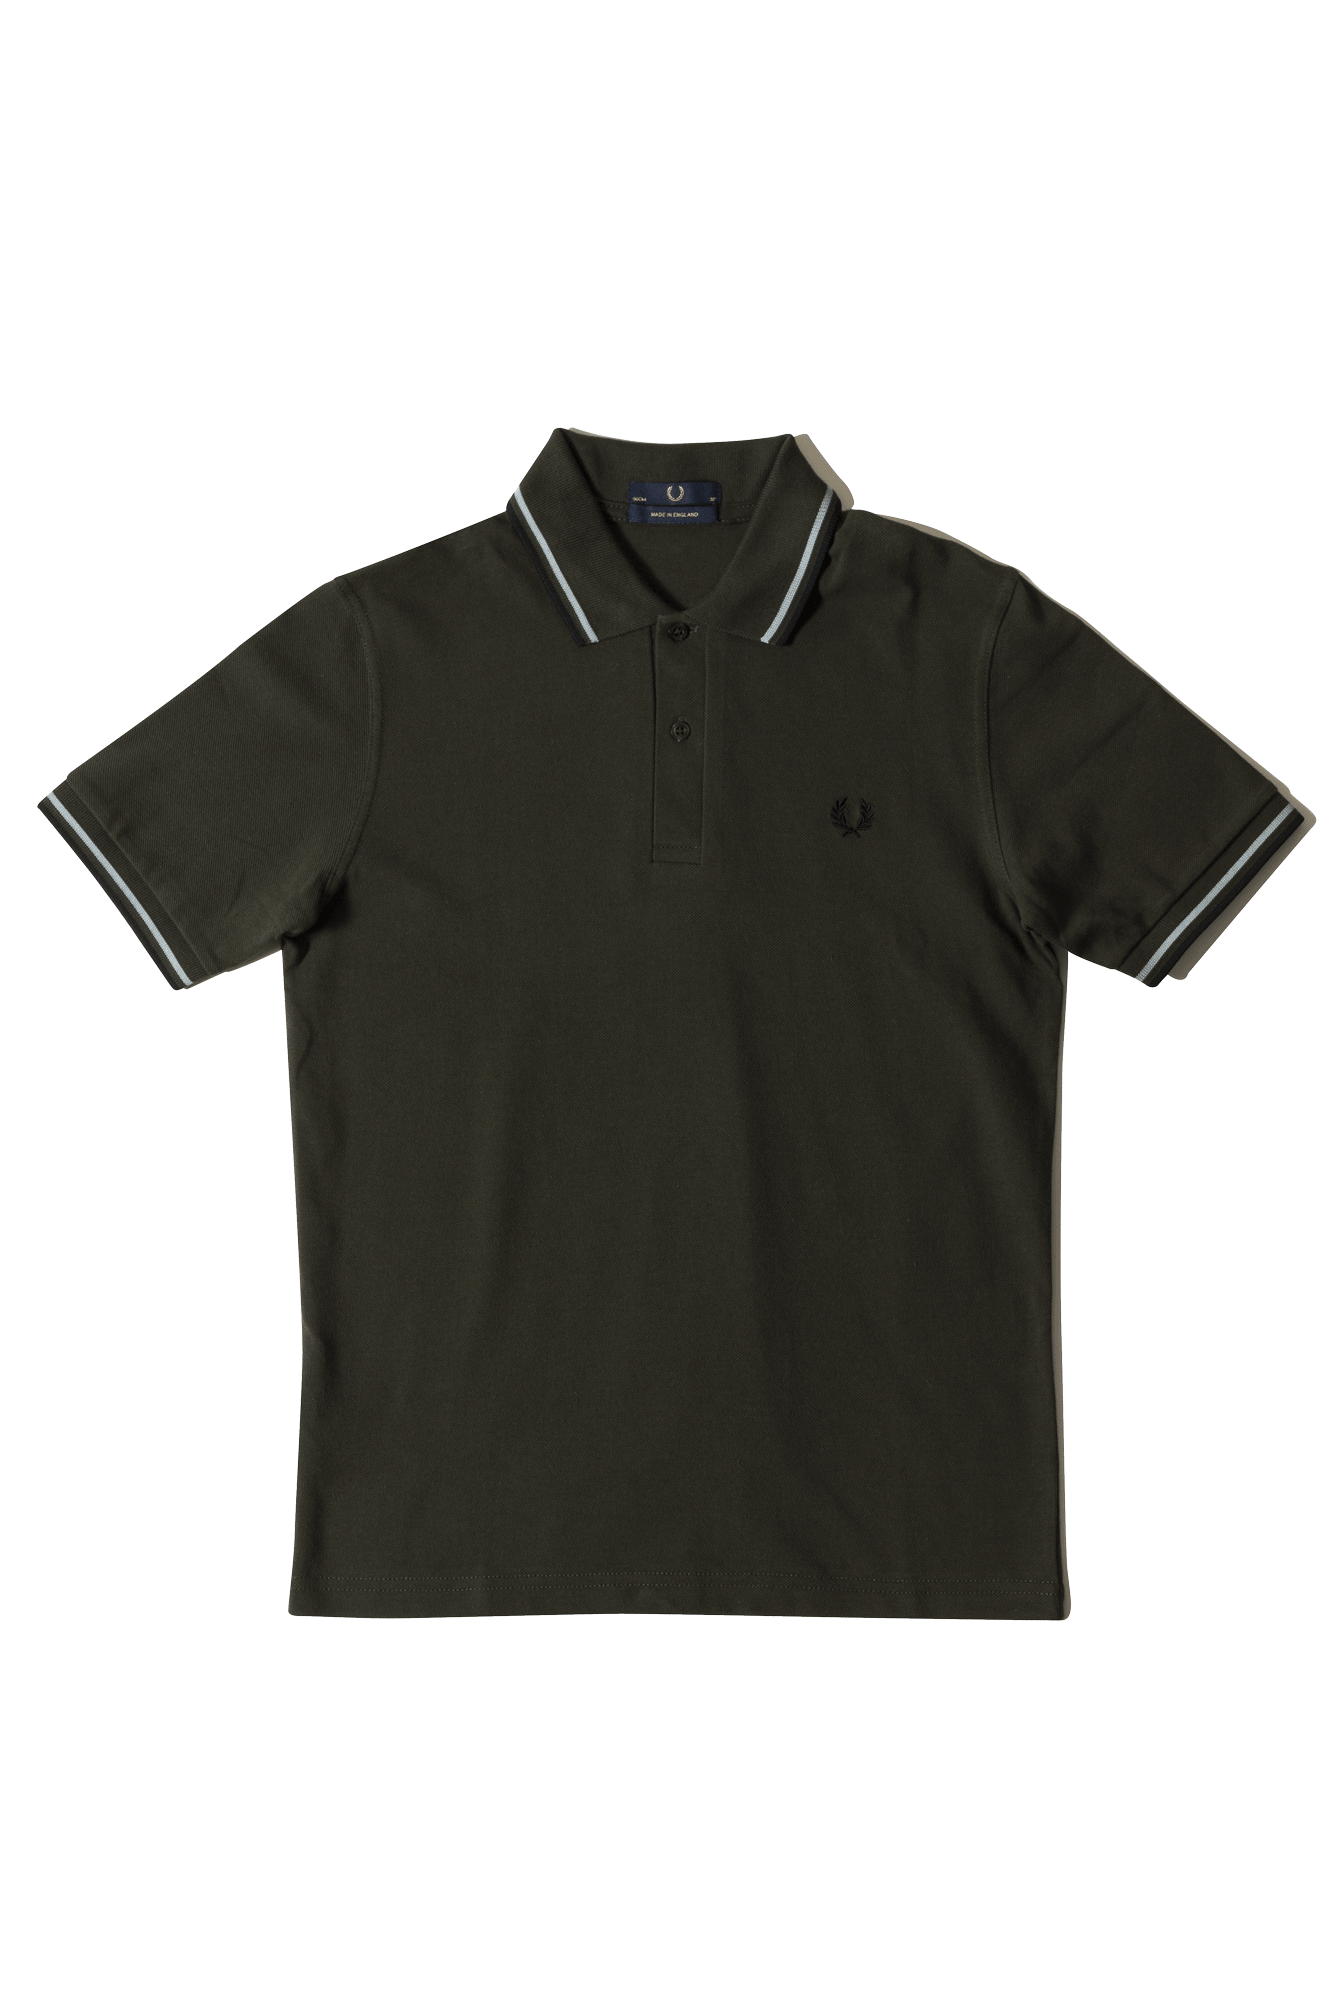 Fred Perry Polo Twin Tipped Fred Perry Shirt Green M12408#000#C0013#44 - One Block Down